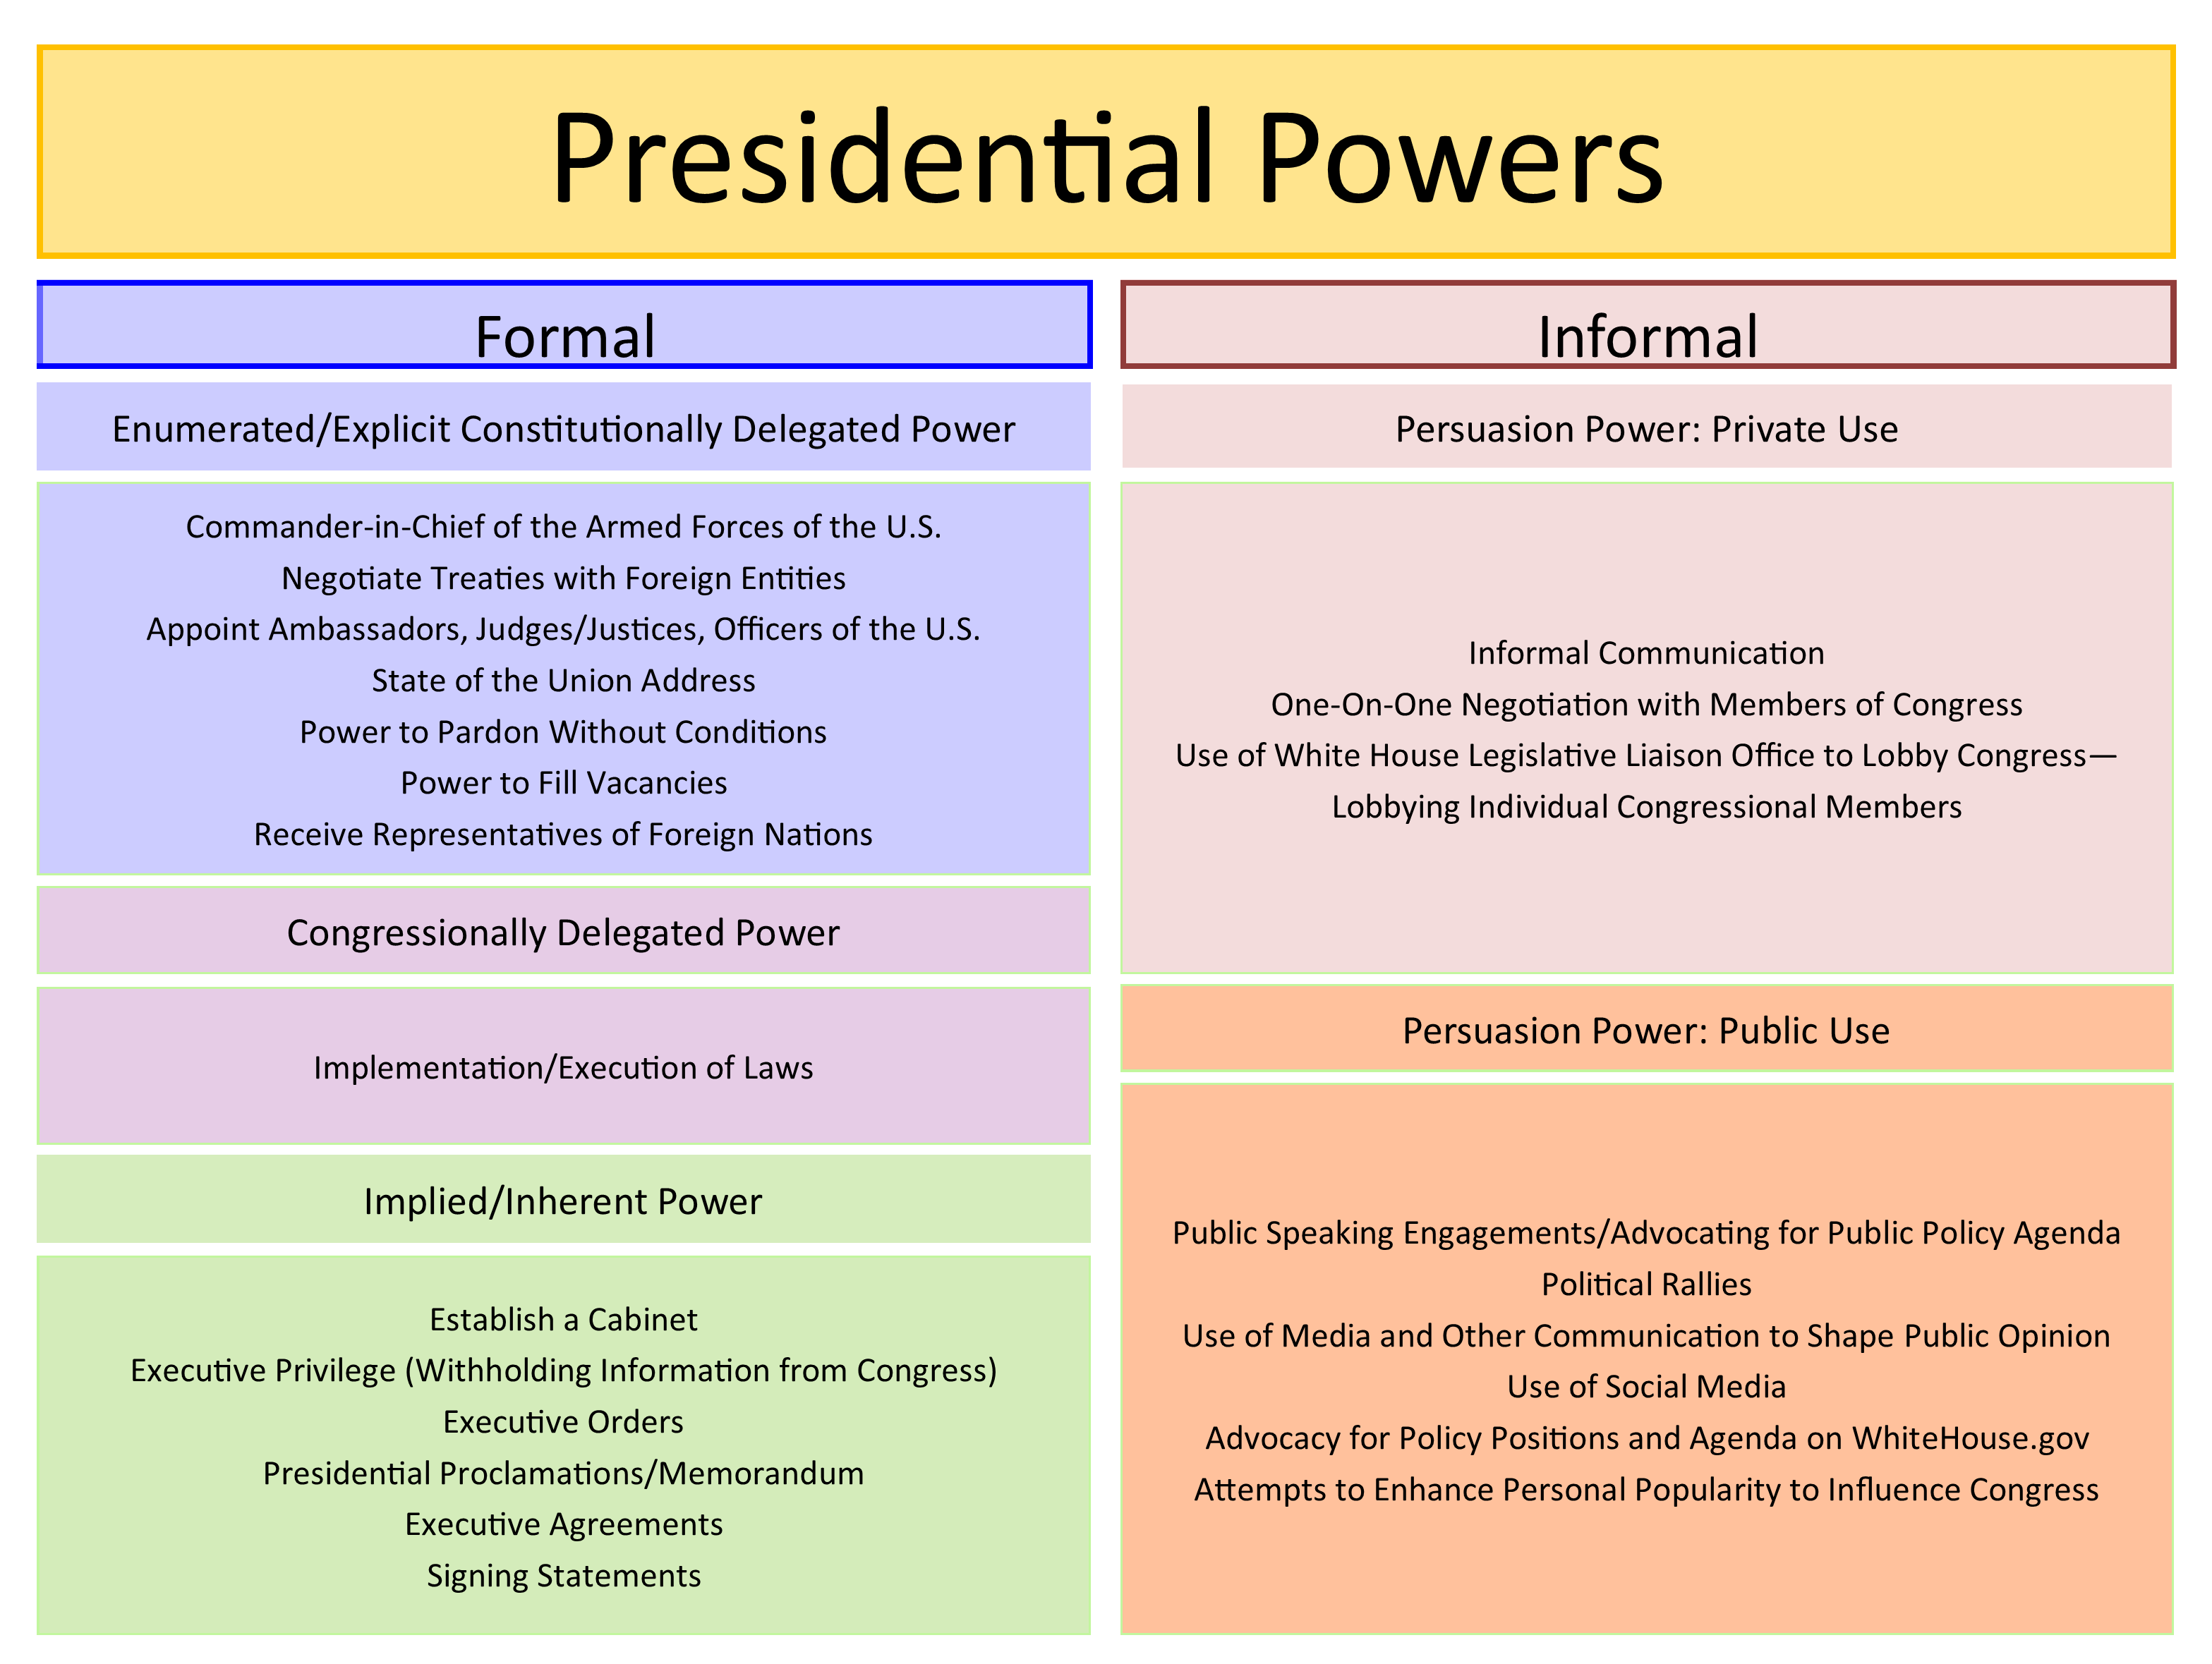 Chart lists the formal and informal powers of the president including enumerated, delegated, implied, persuasive, etc.